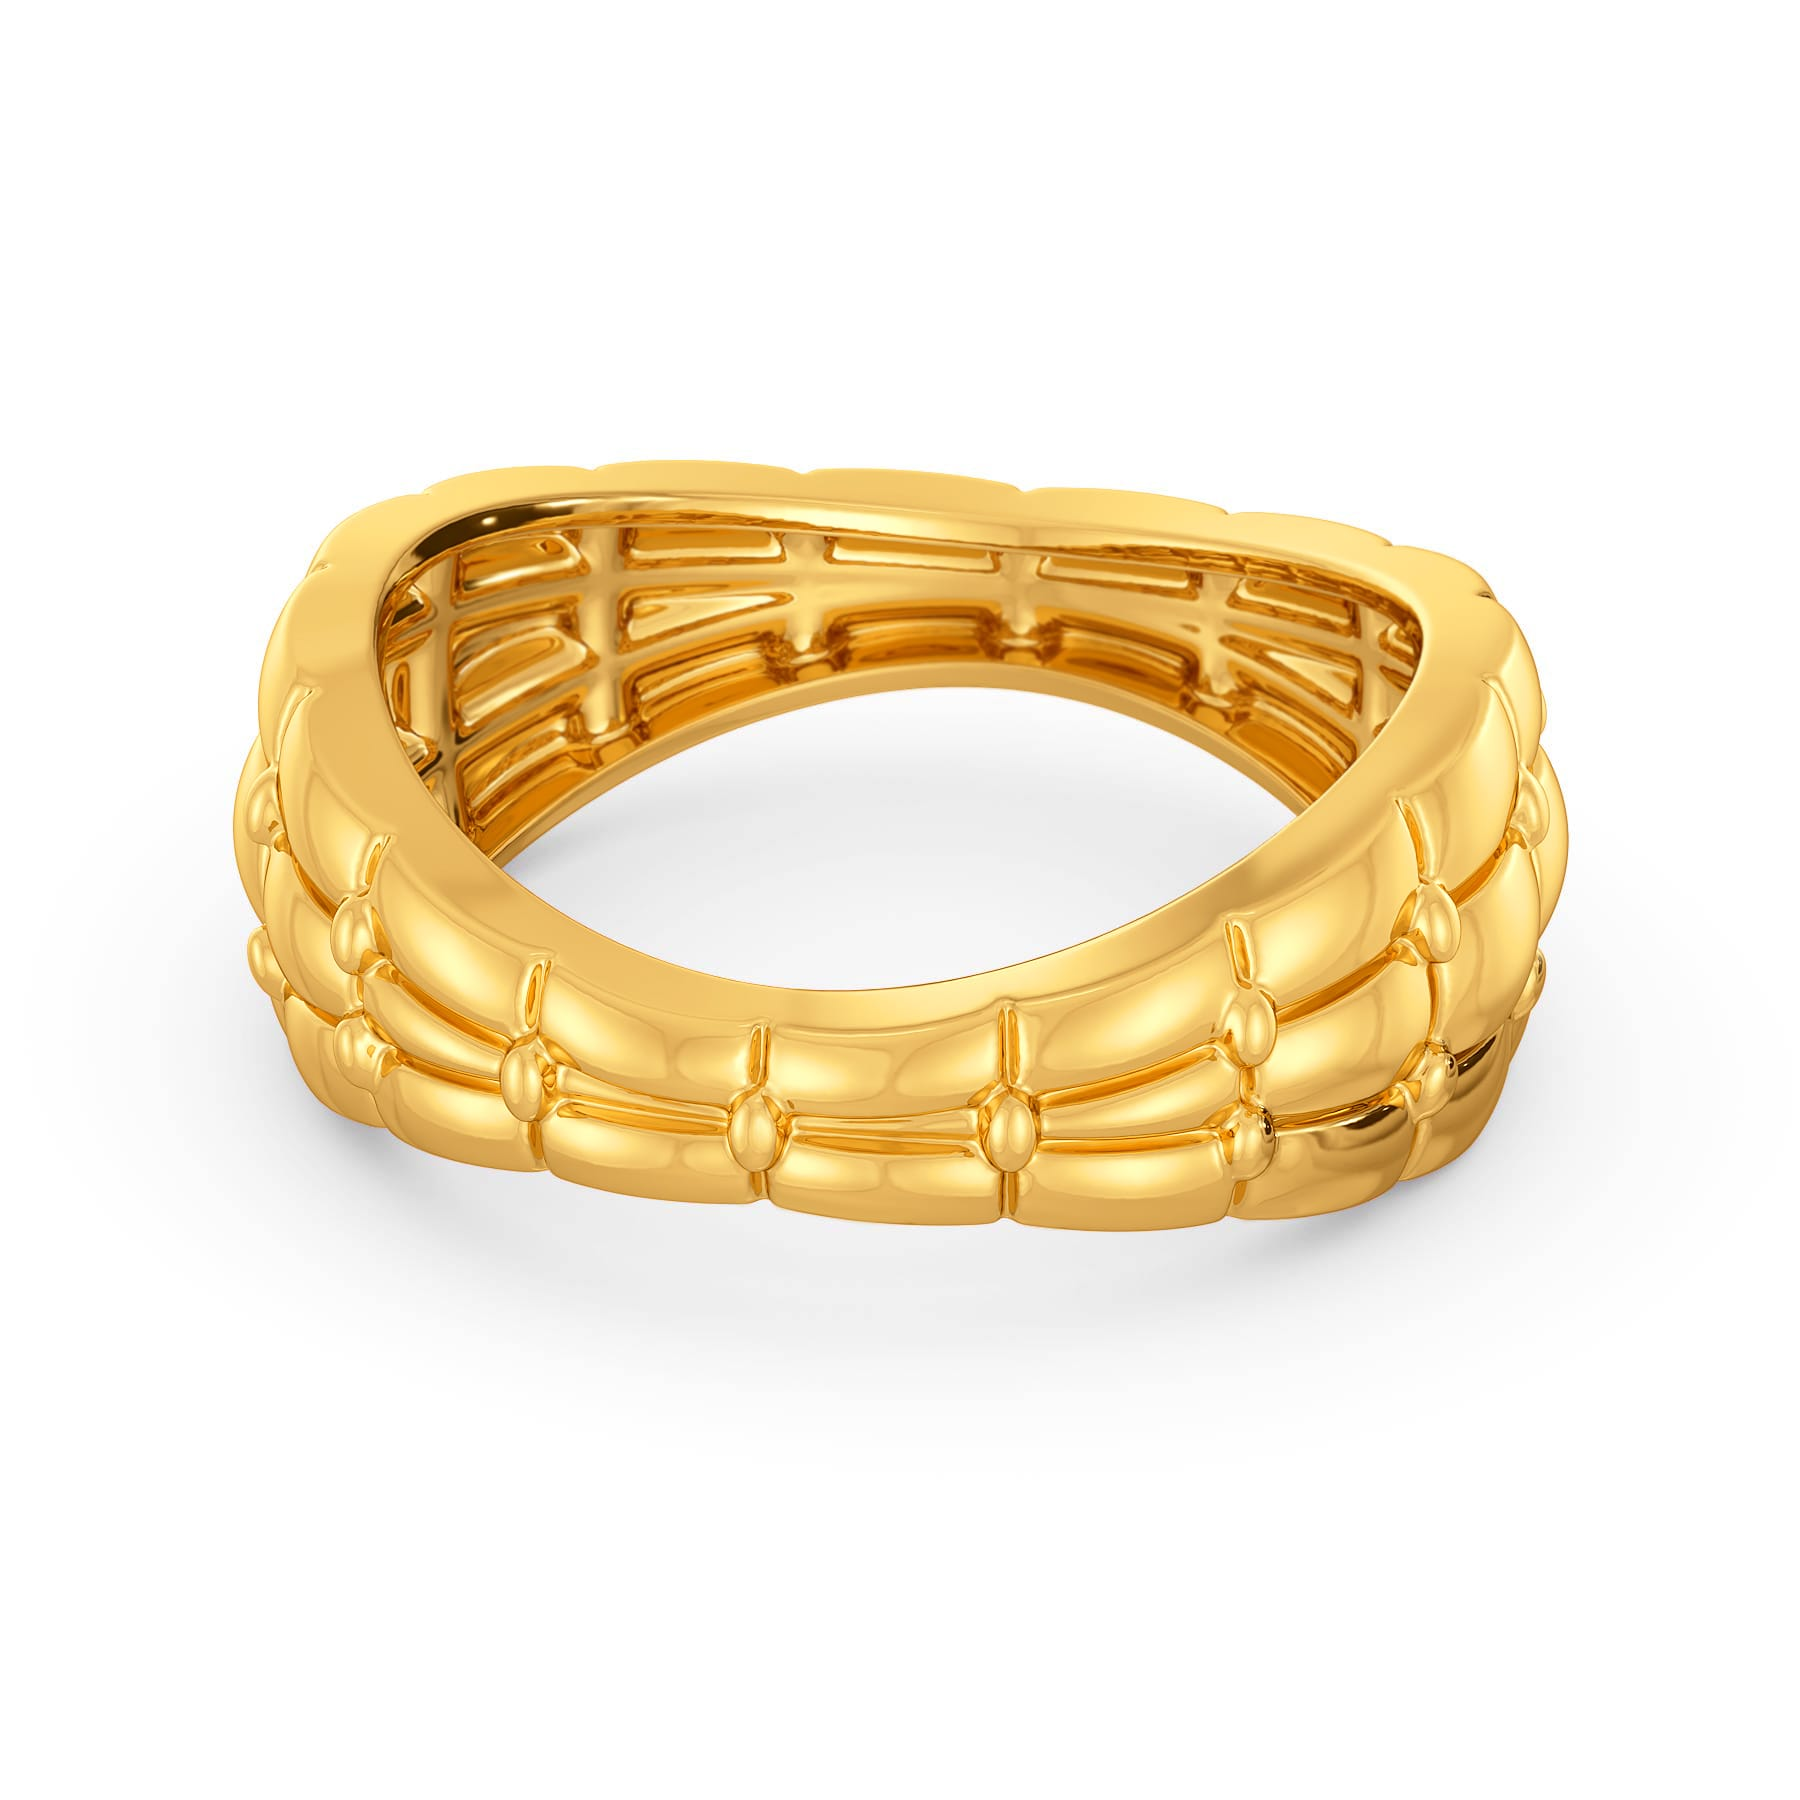 A Quilt Stitch Gold Rings